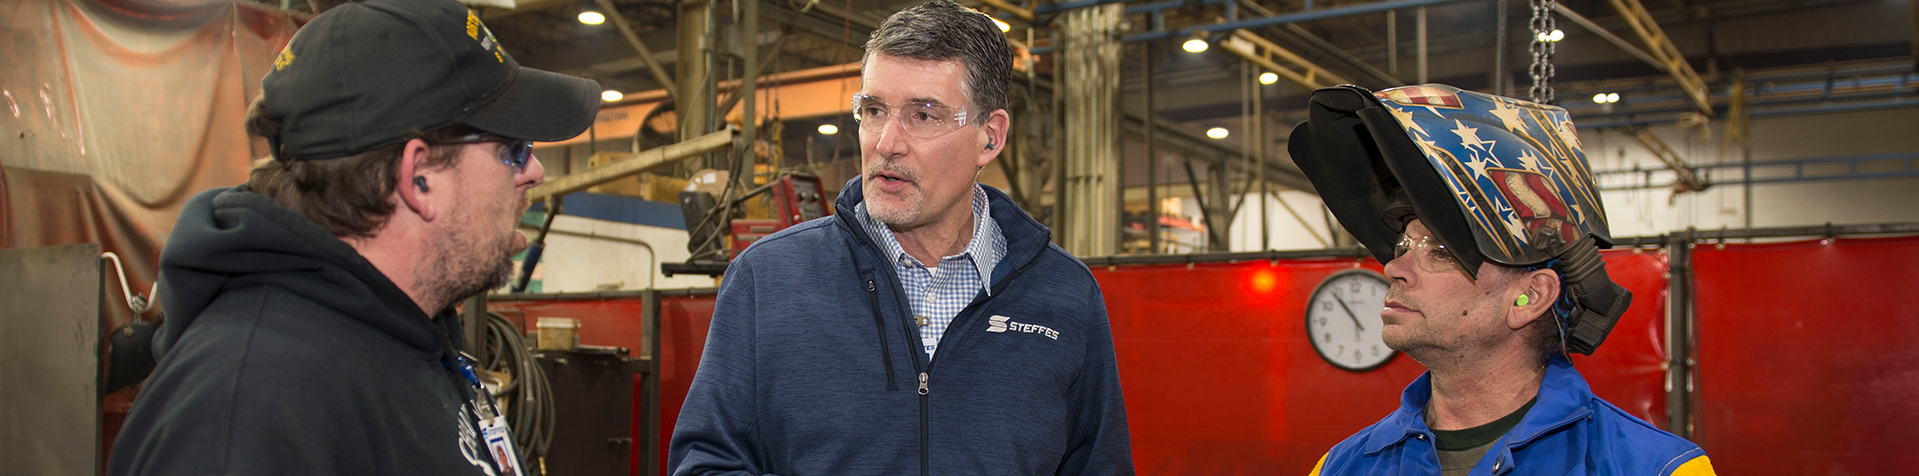 Paul Eidenschink talking to two Steffes employees on the manufacturing plant floor